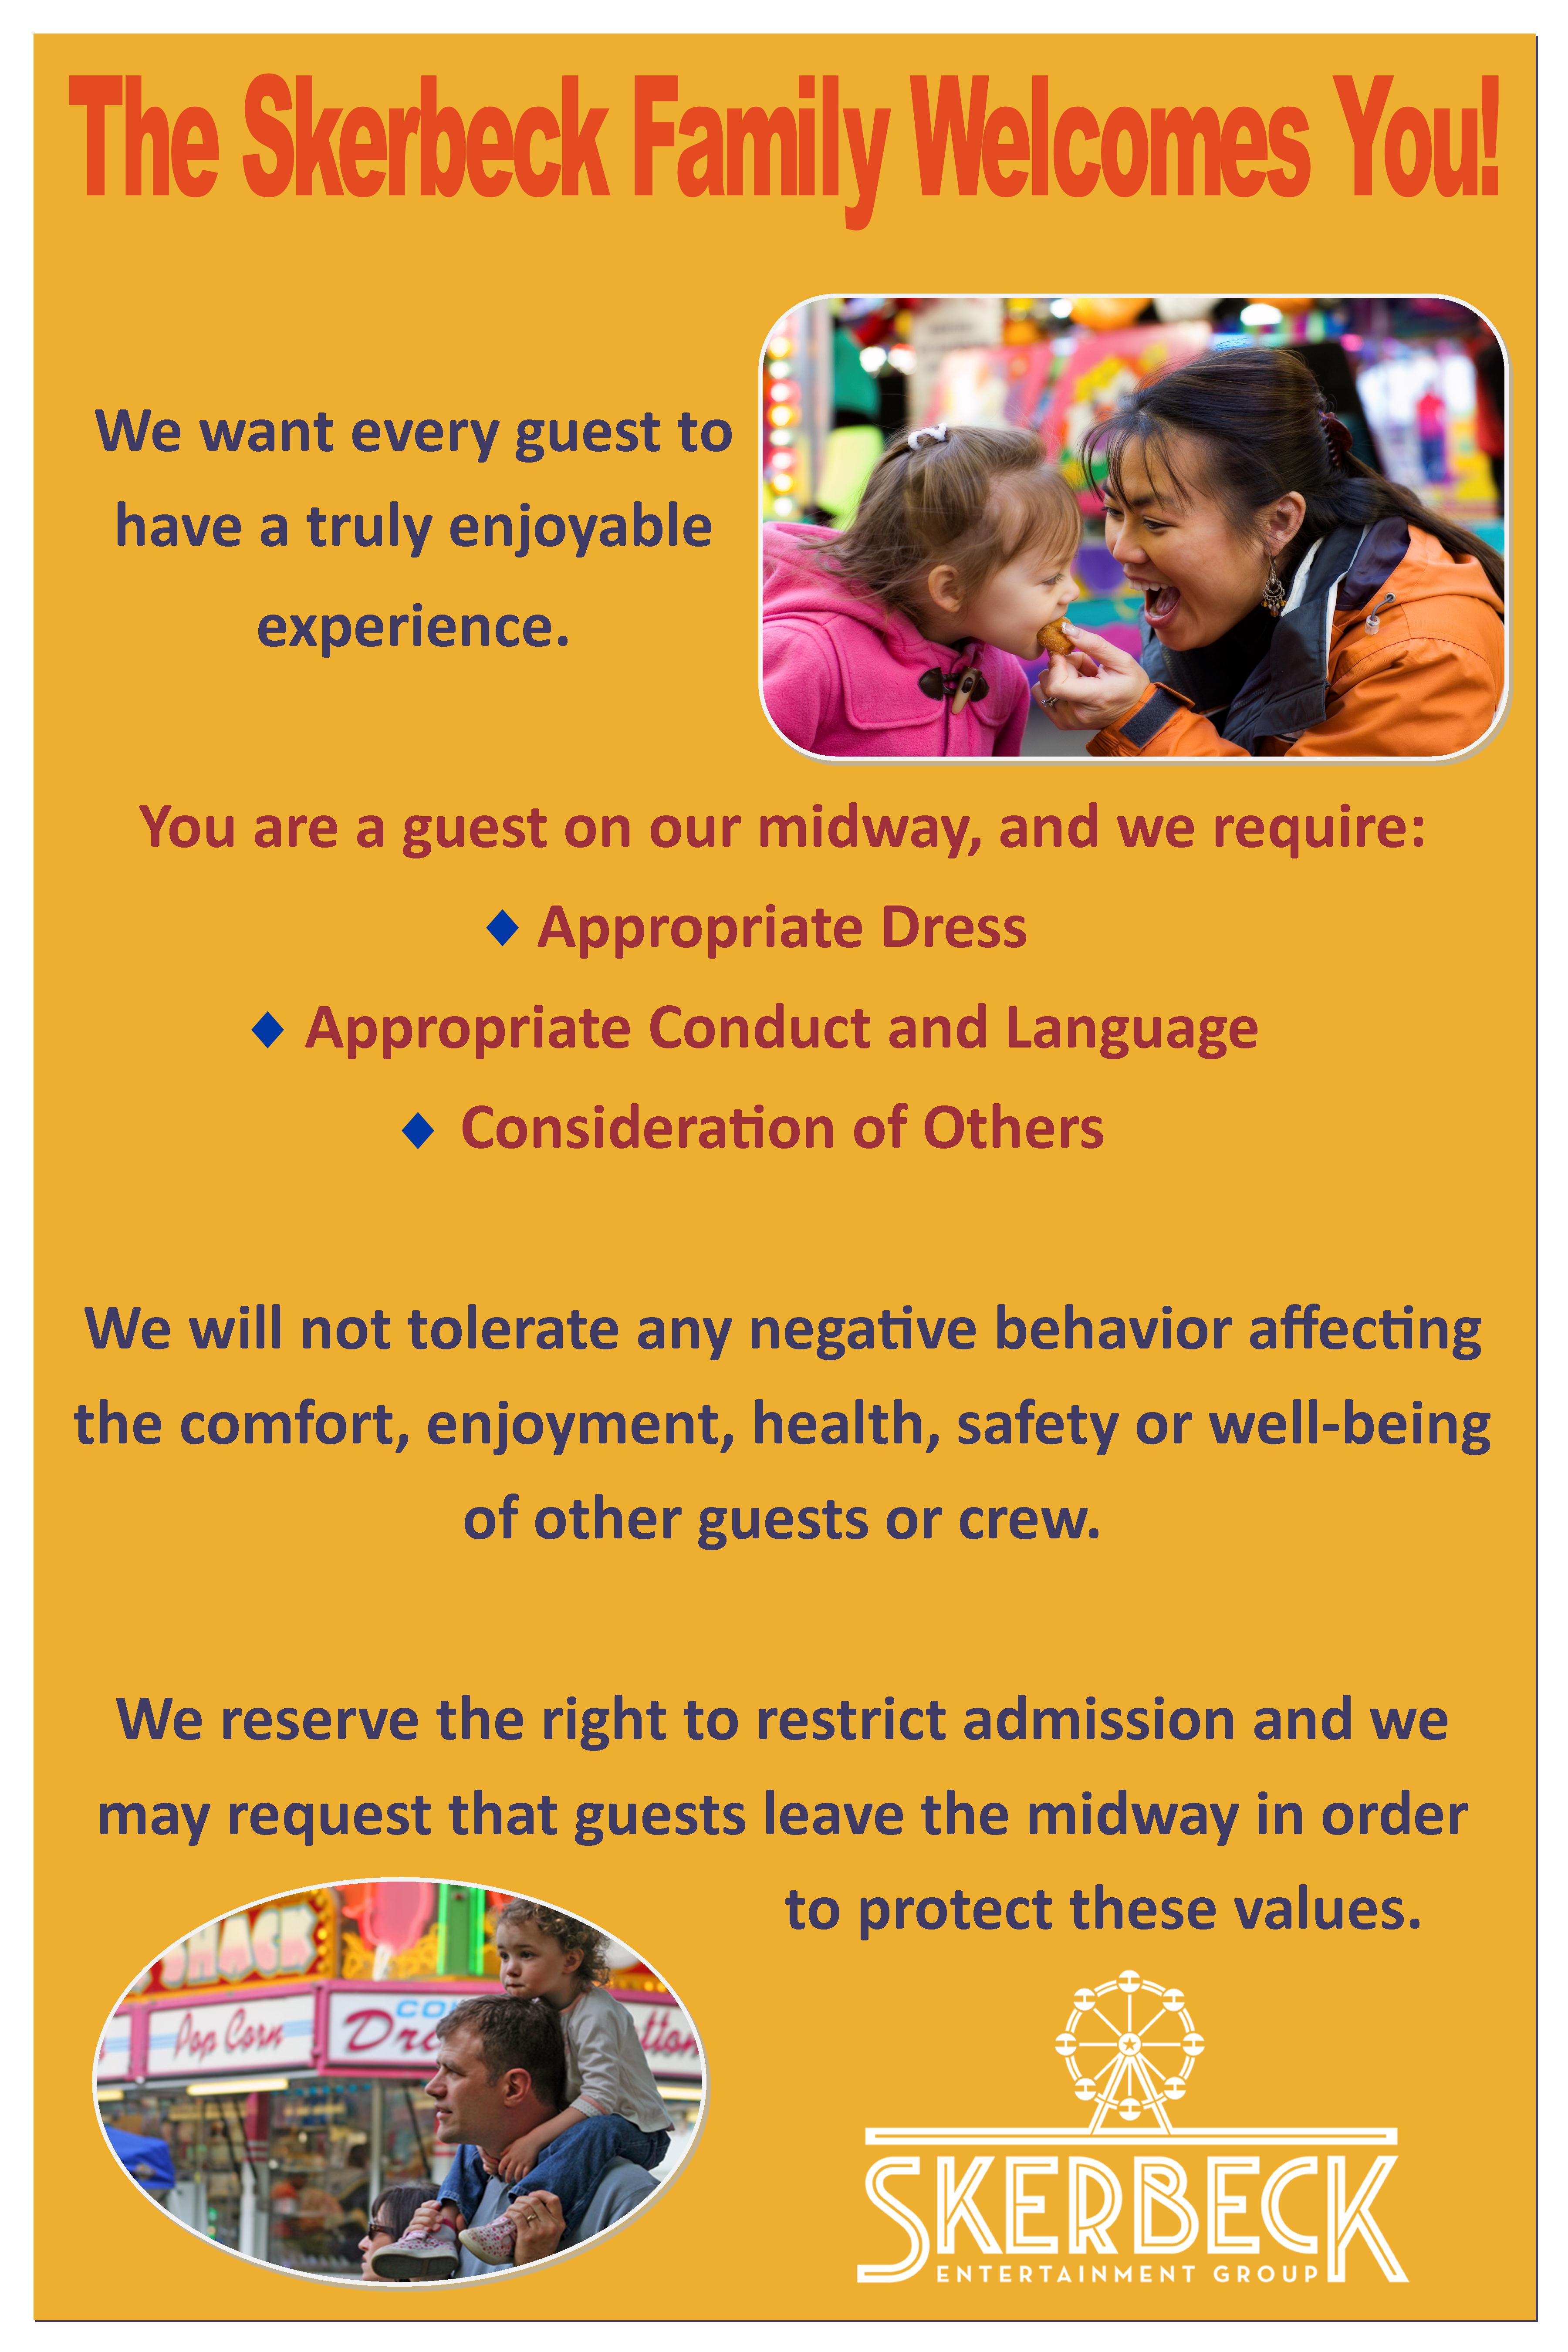 Midway Code of Conduct